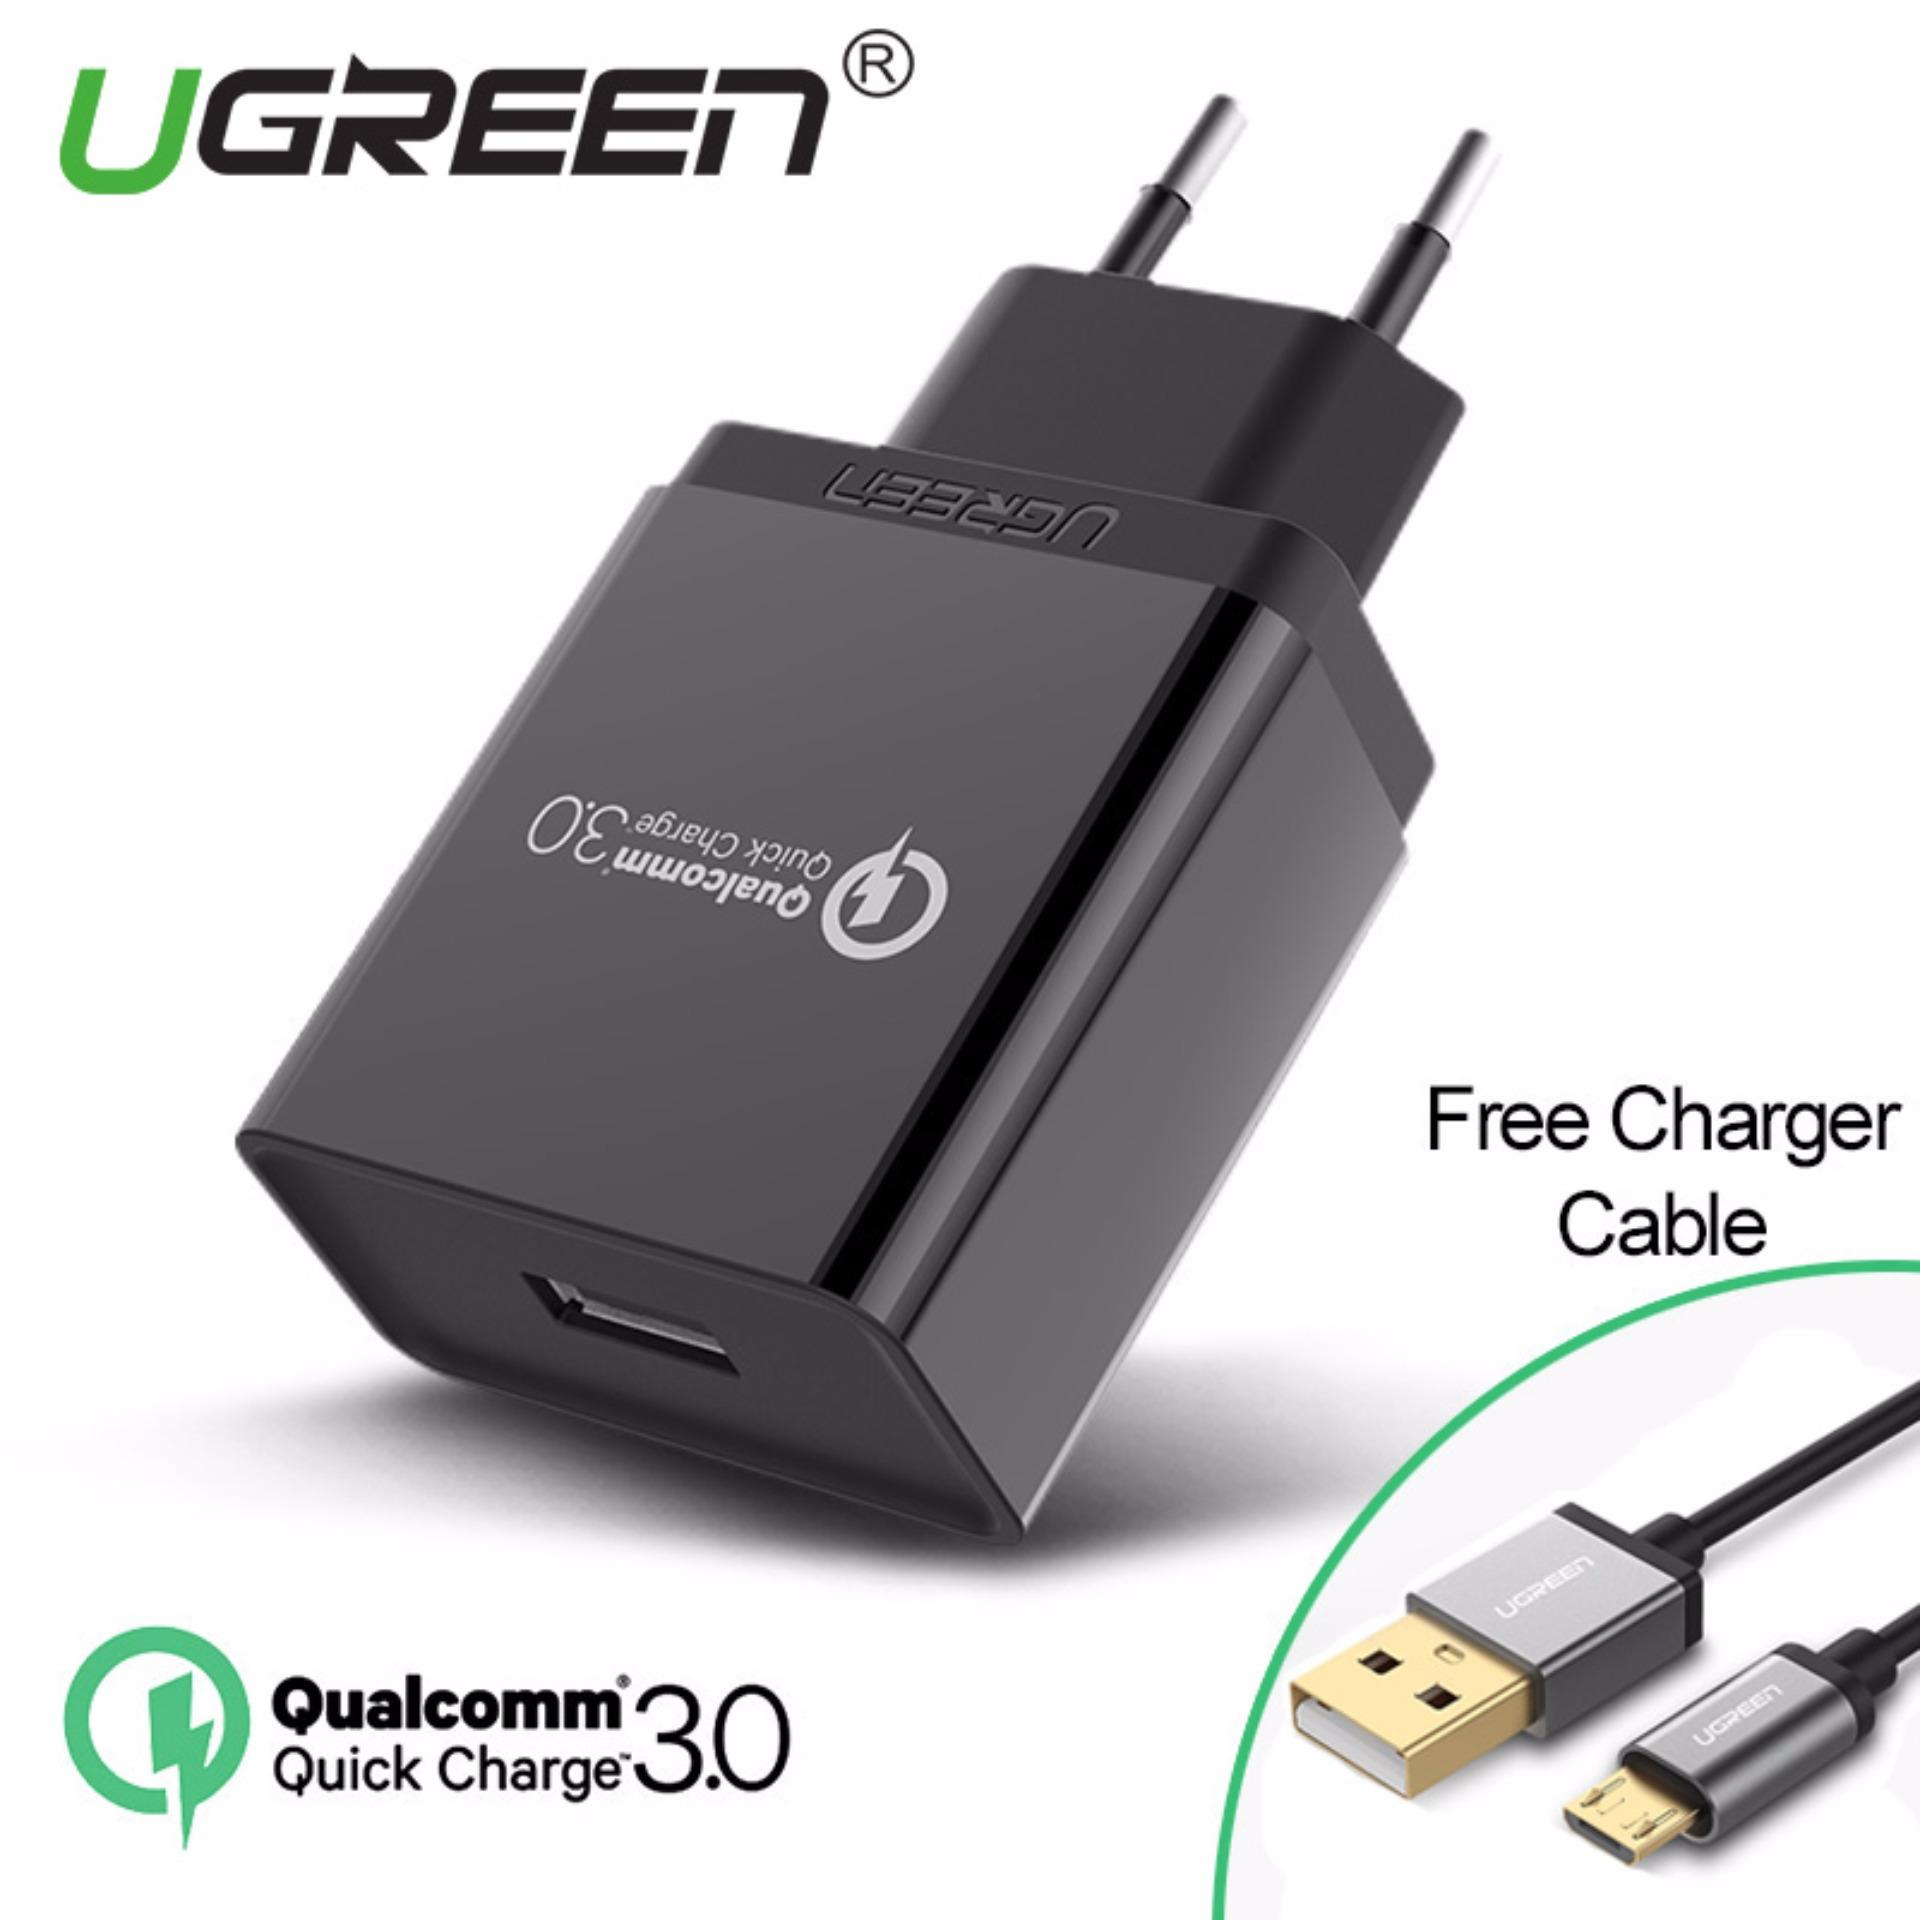 UGREEN Quick Charge Quick Charger for Xiaomi Redmi Samsung ASUS Zenfone Handphone hp USB 3.0 Charger 18W Fast Mobile Phone Charger Black + Free 1 Meter Micro USB Cable